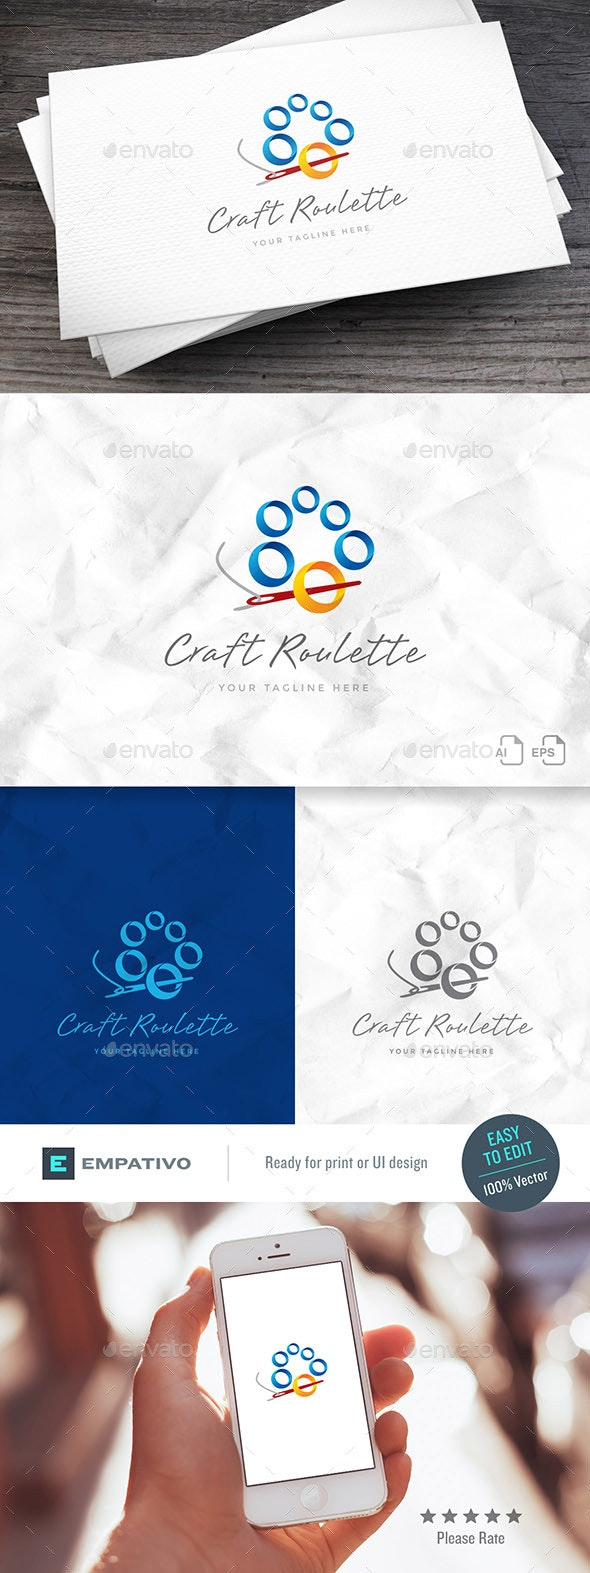 Craft Roulette Logo Template - Objects Logo Templates